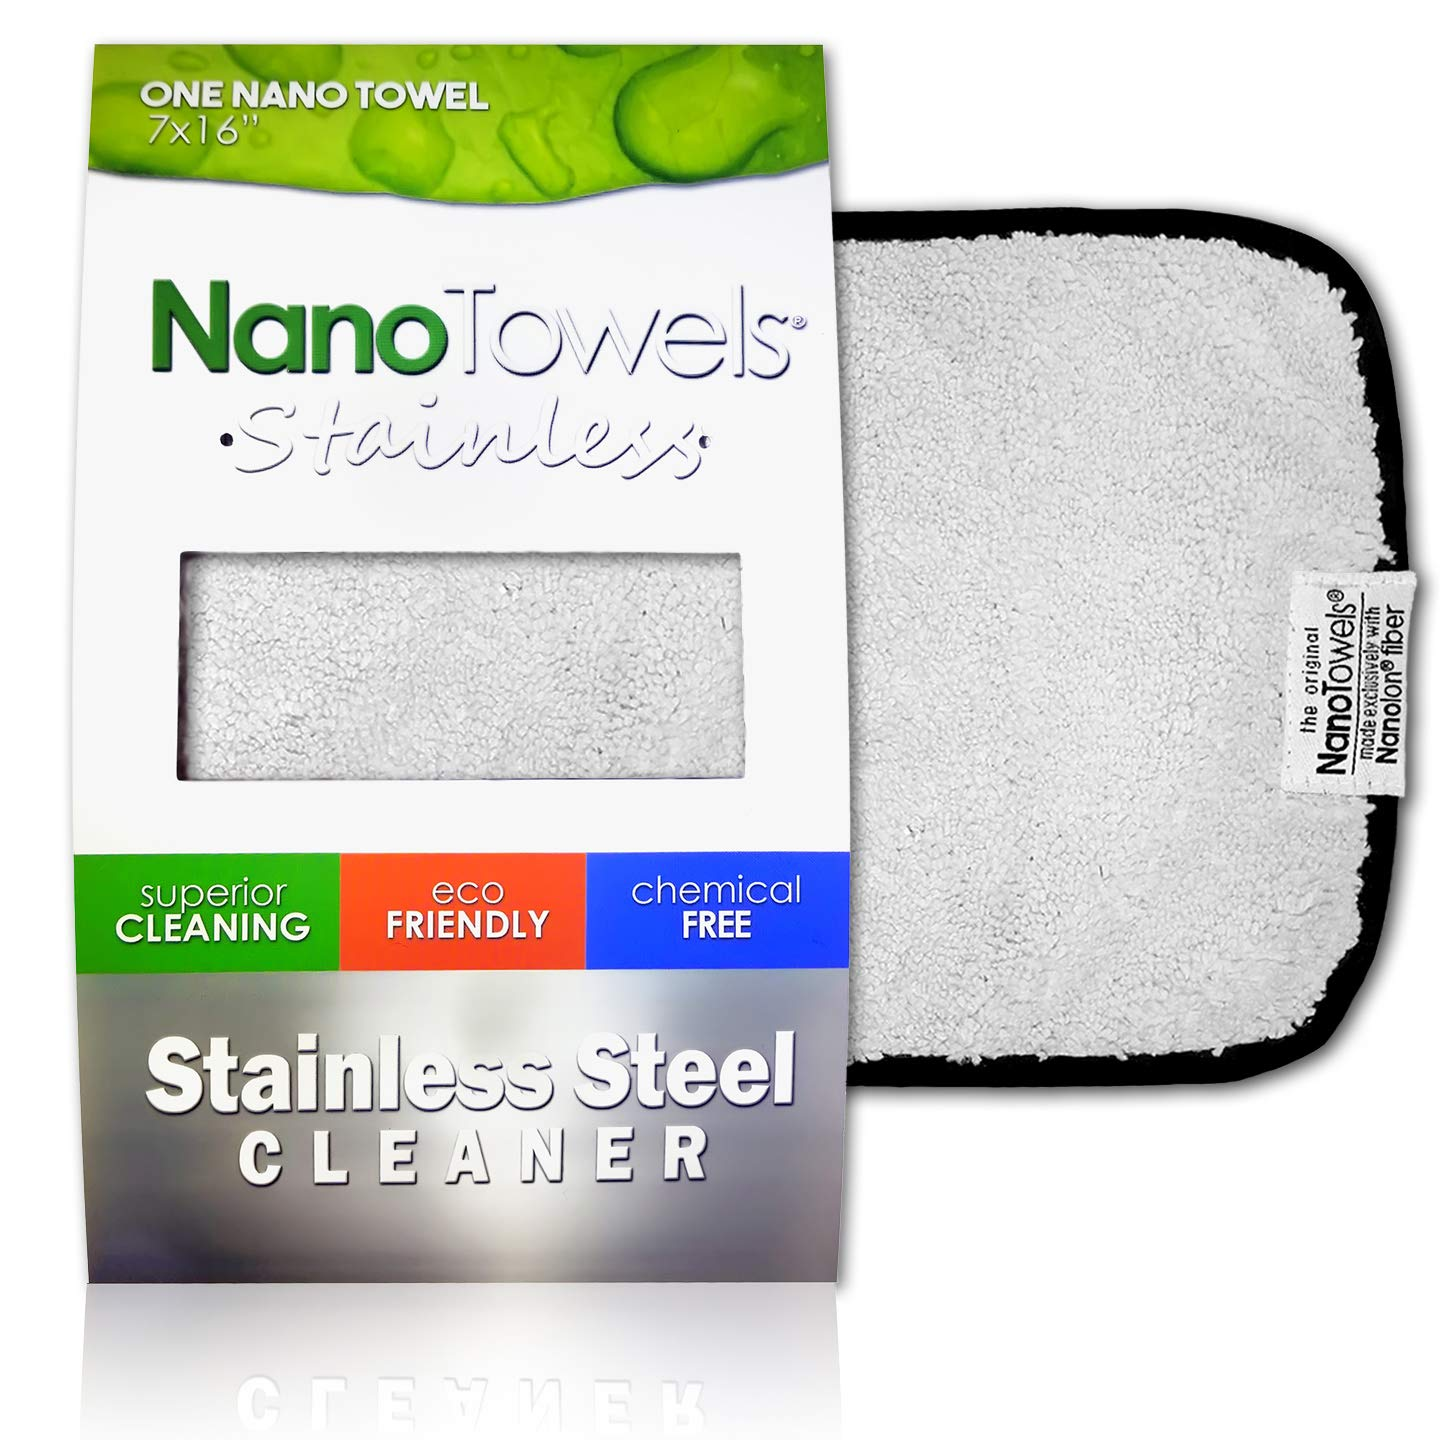 """Nano Towels Stainless Steel Cleaner   The Amazing Chemical Free Stainless Steel Cleaning Reusable Wipe Cloth   Kid & Pet Safe   7x16"""" (1 pc)"""